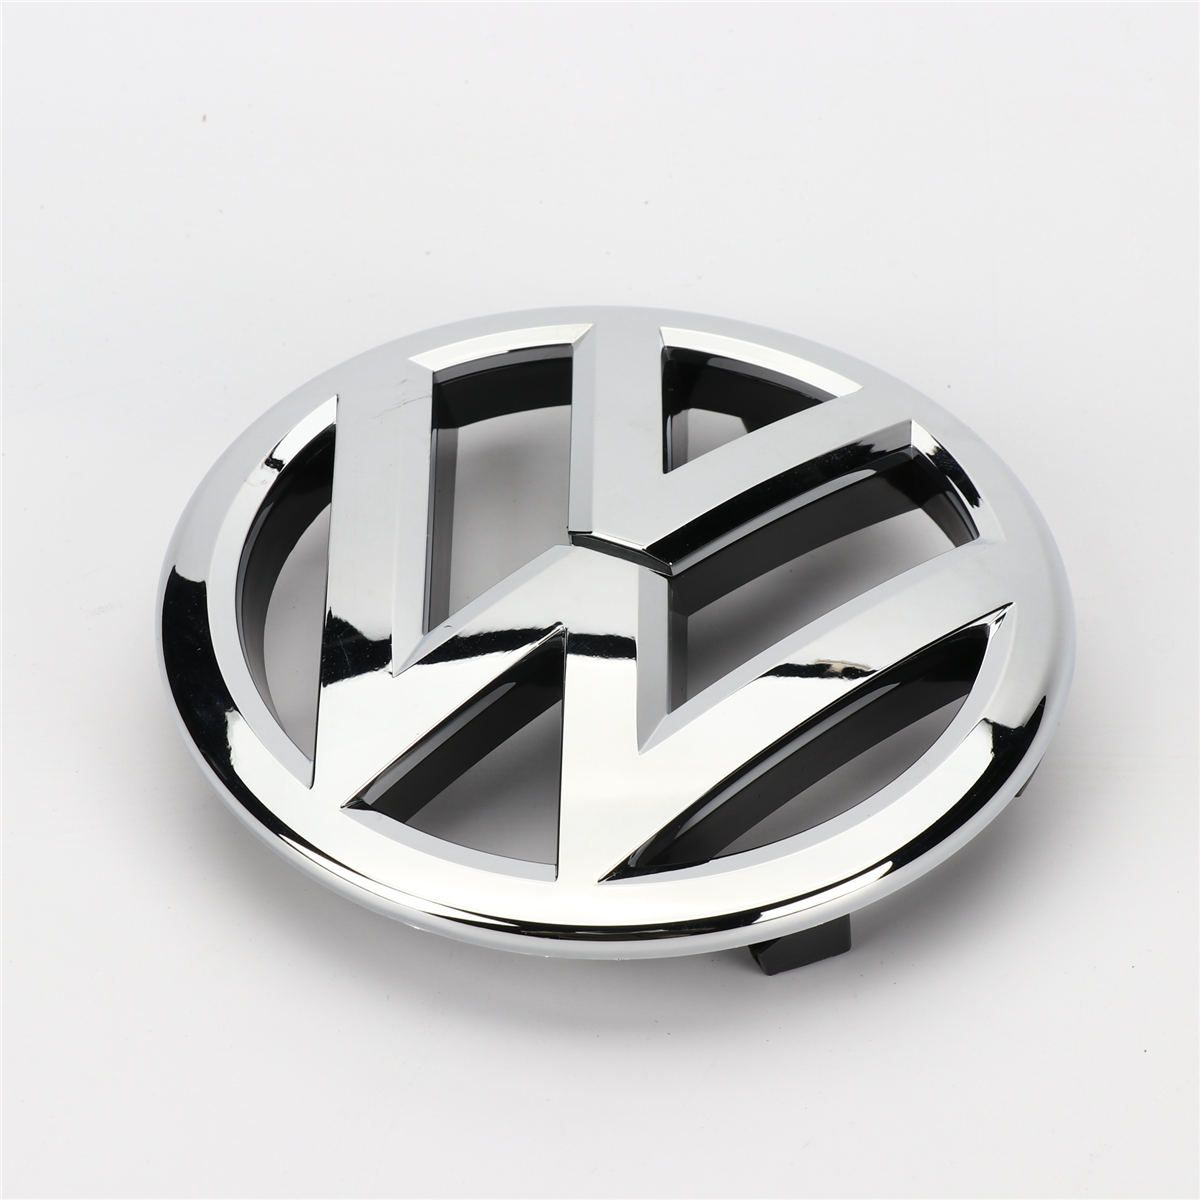 Chrome Front Grille Badge Emblem Decal 135mm for VW Passat B7 Touran Caddy 1T0 853 601 E